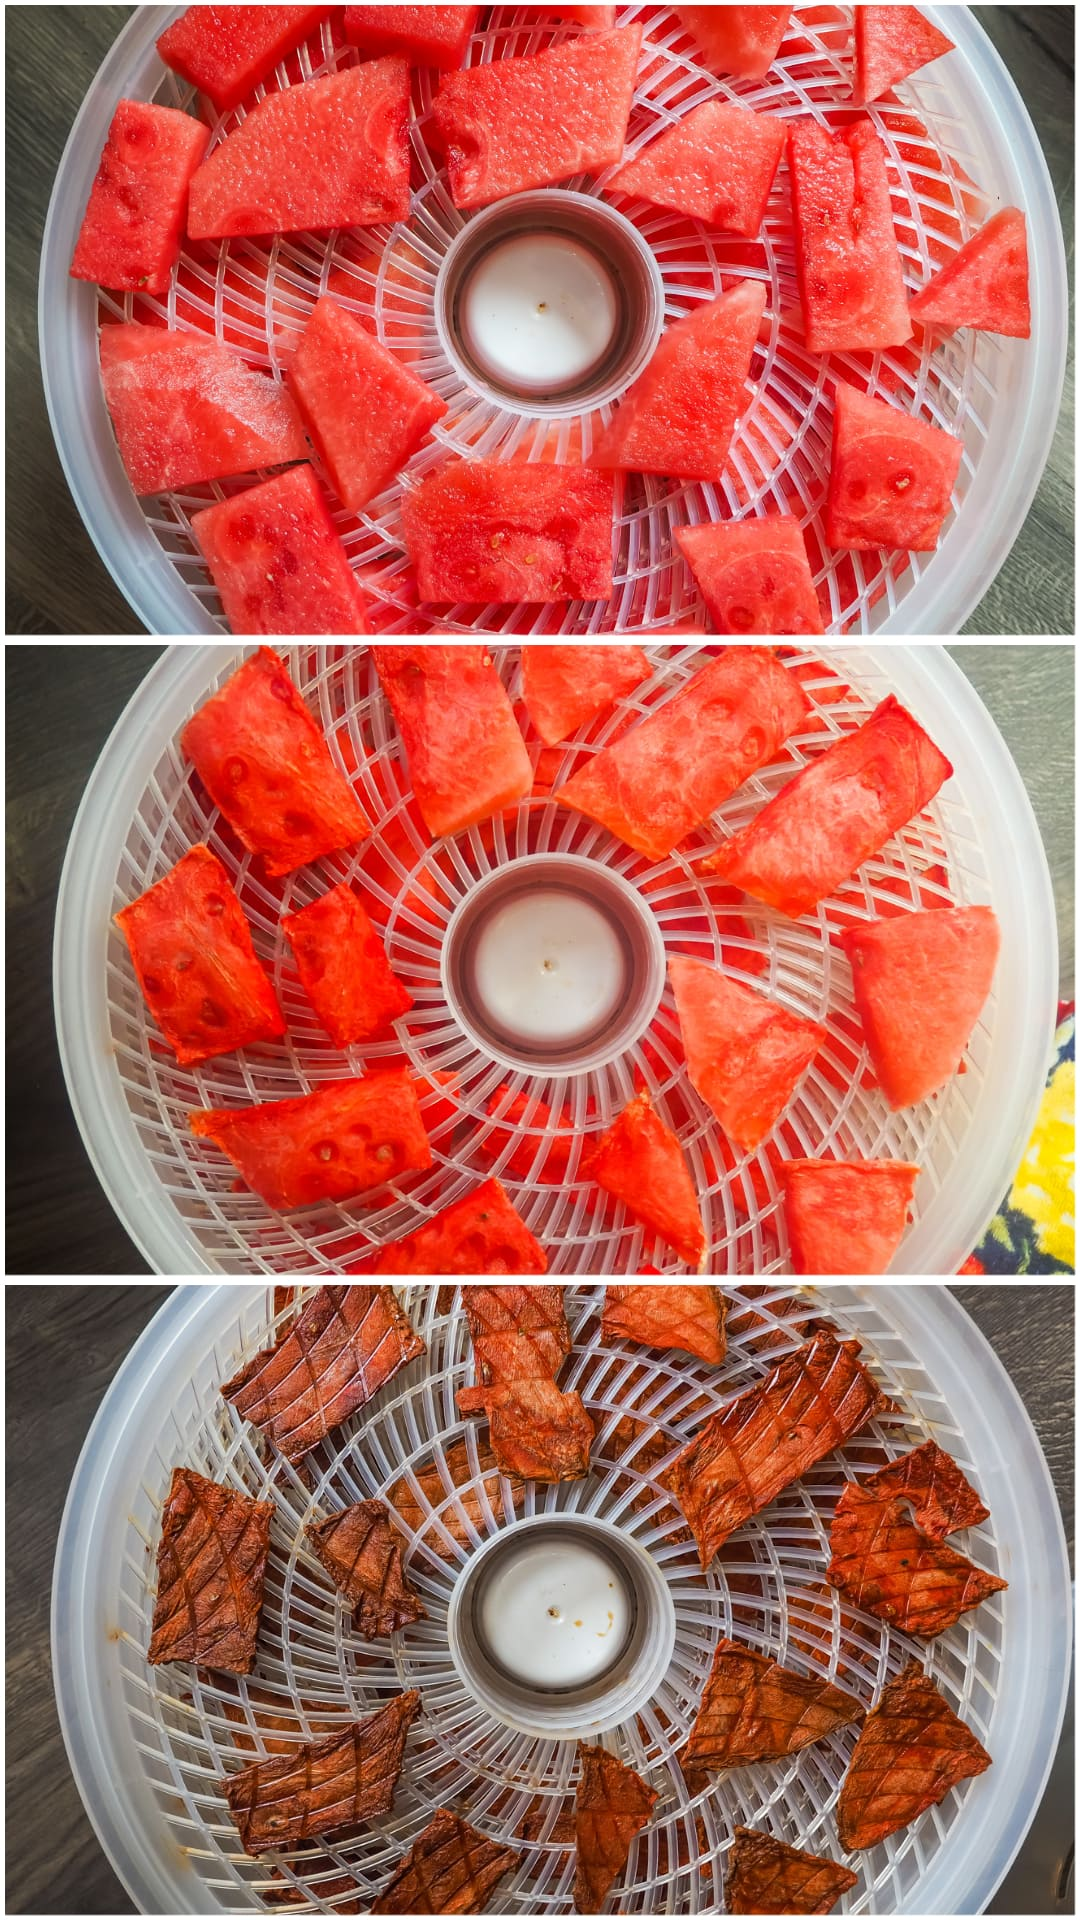 Three images showing the progression of watermelon as it is dehydrating.